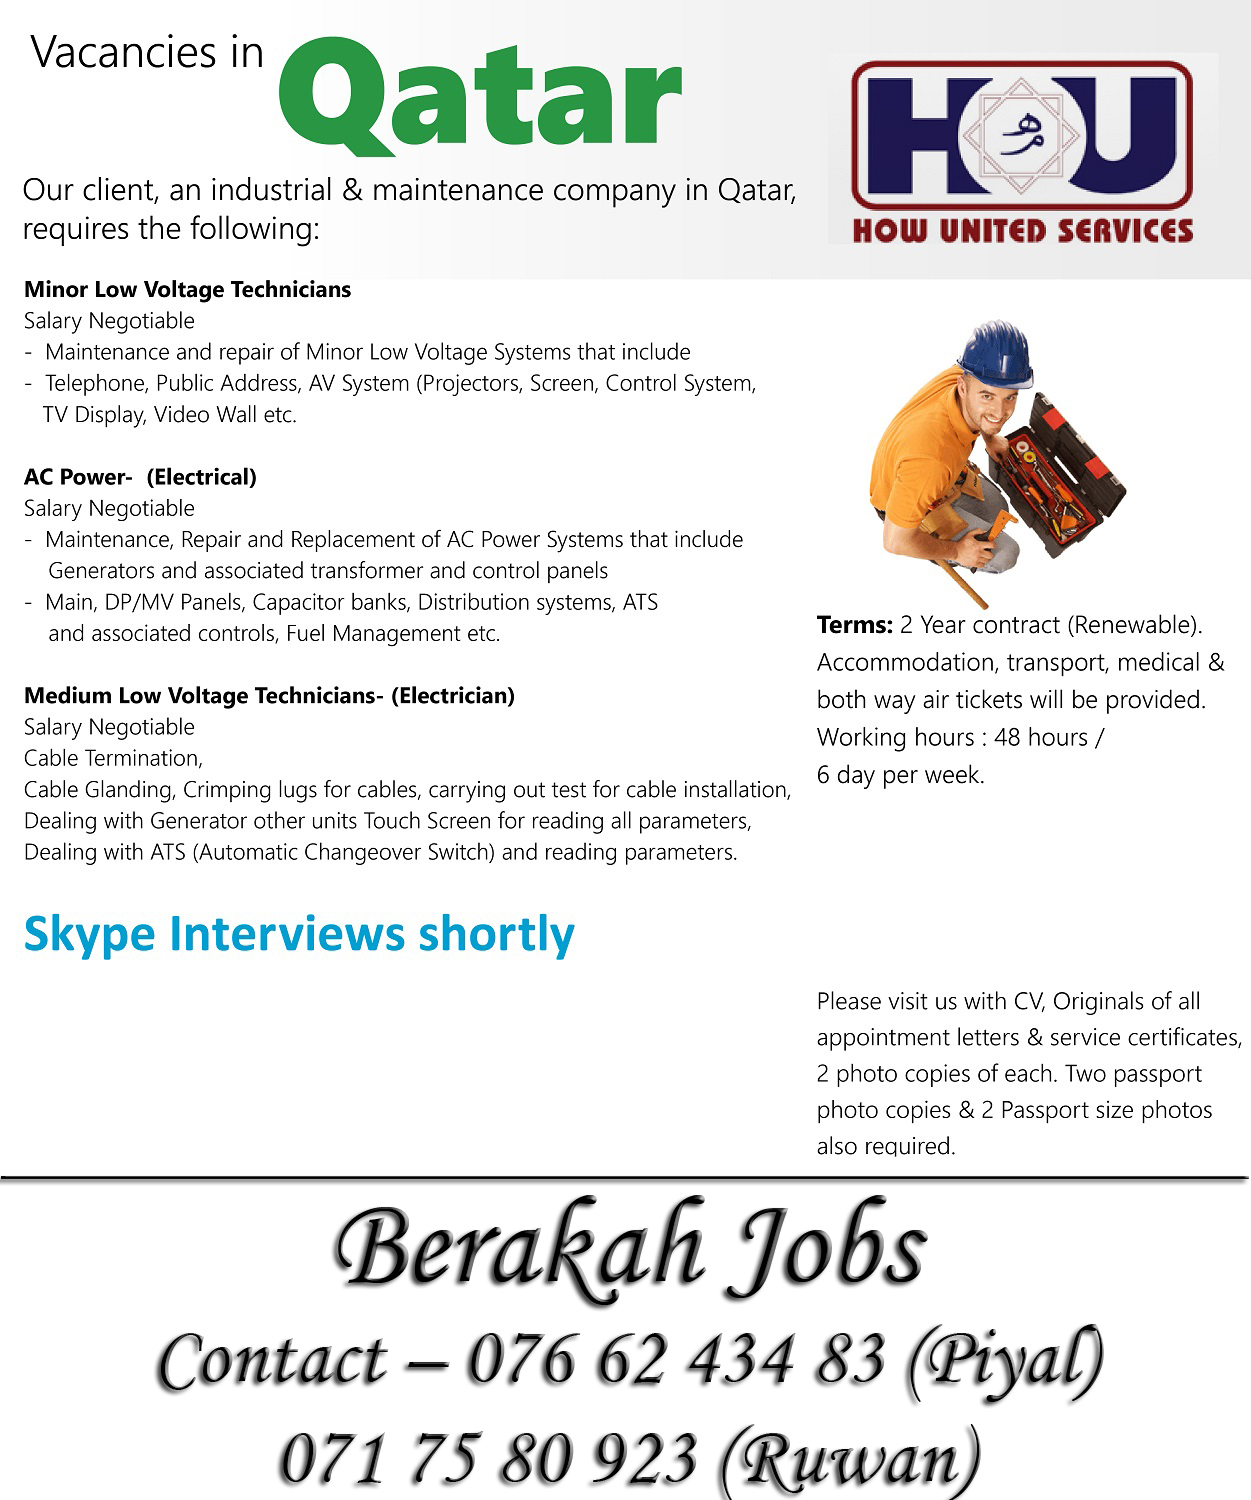 Berakah Job Bank: Vacancies Qatar